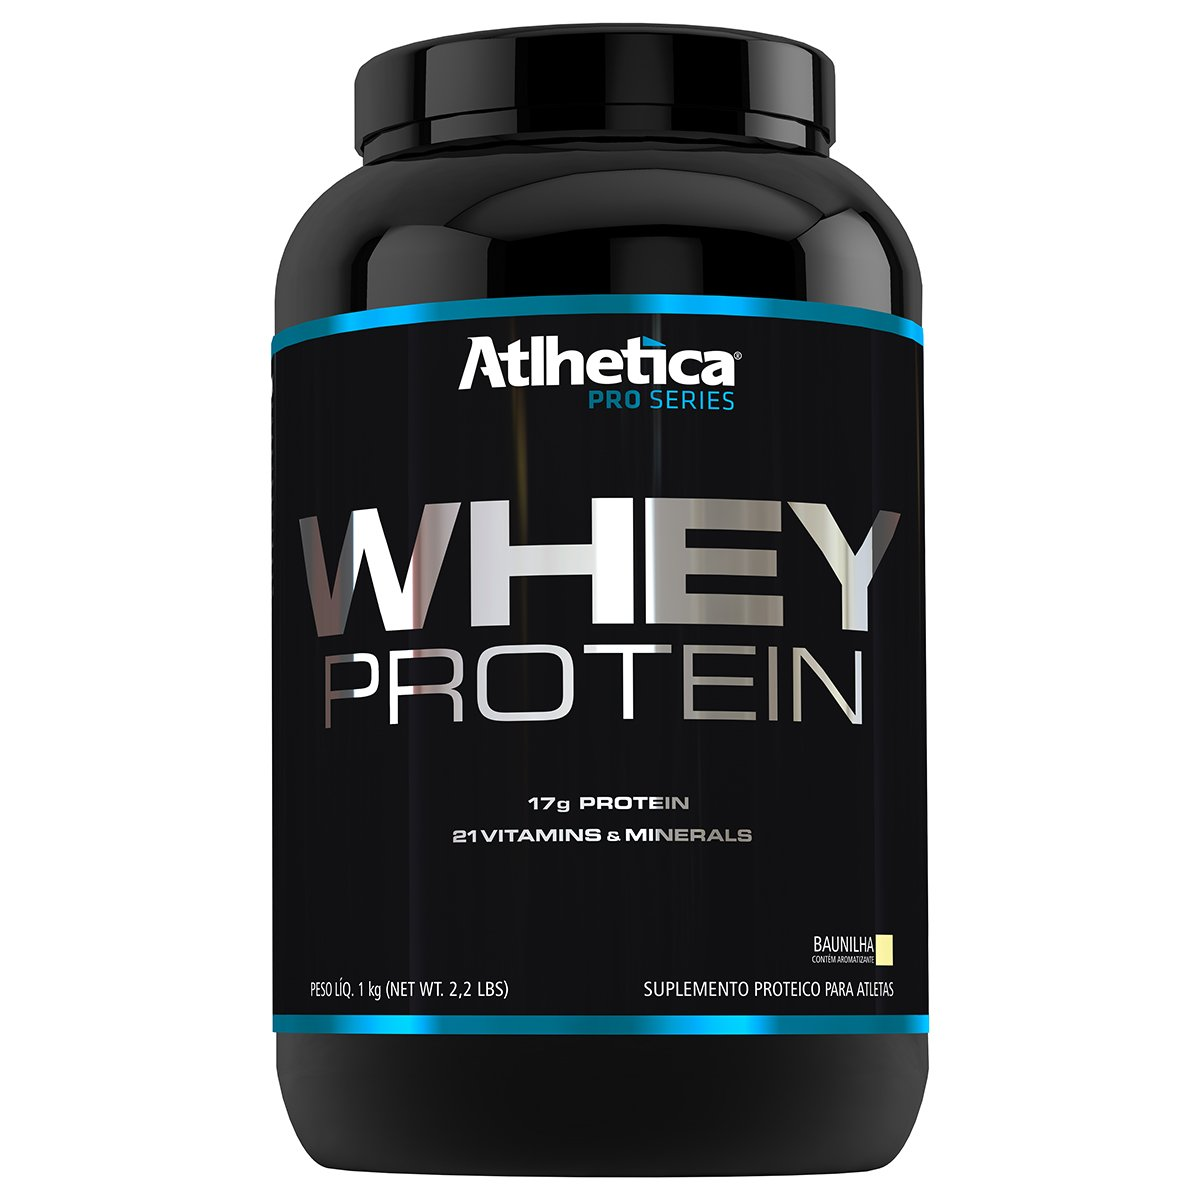 d75d5444c33 Whey Protein Pro Series 1 Kg - Atlhetica Nutrition